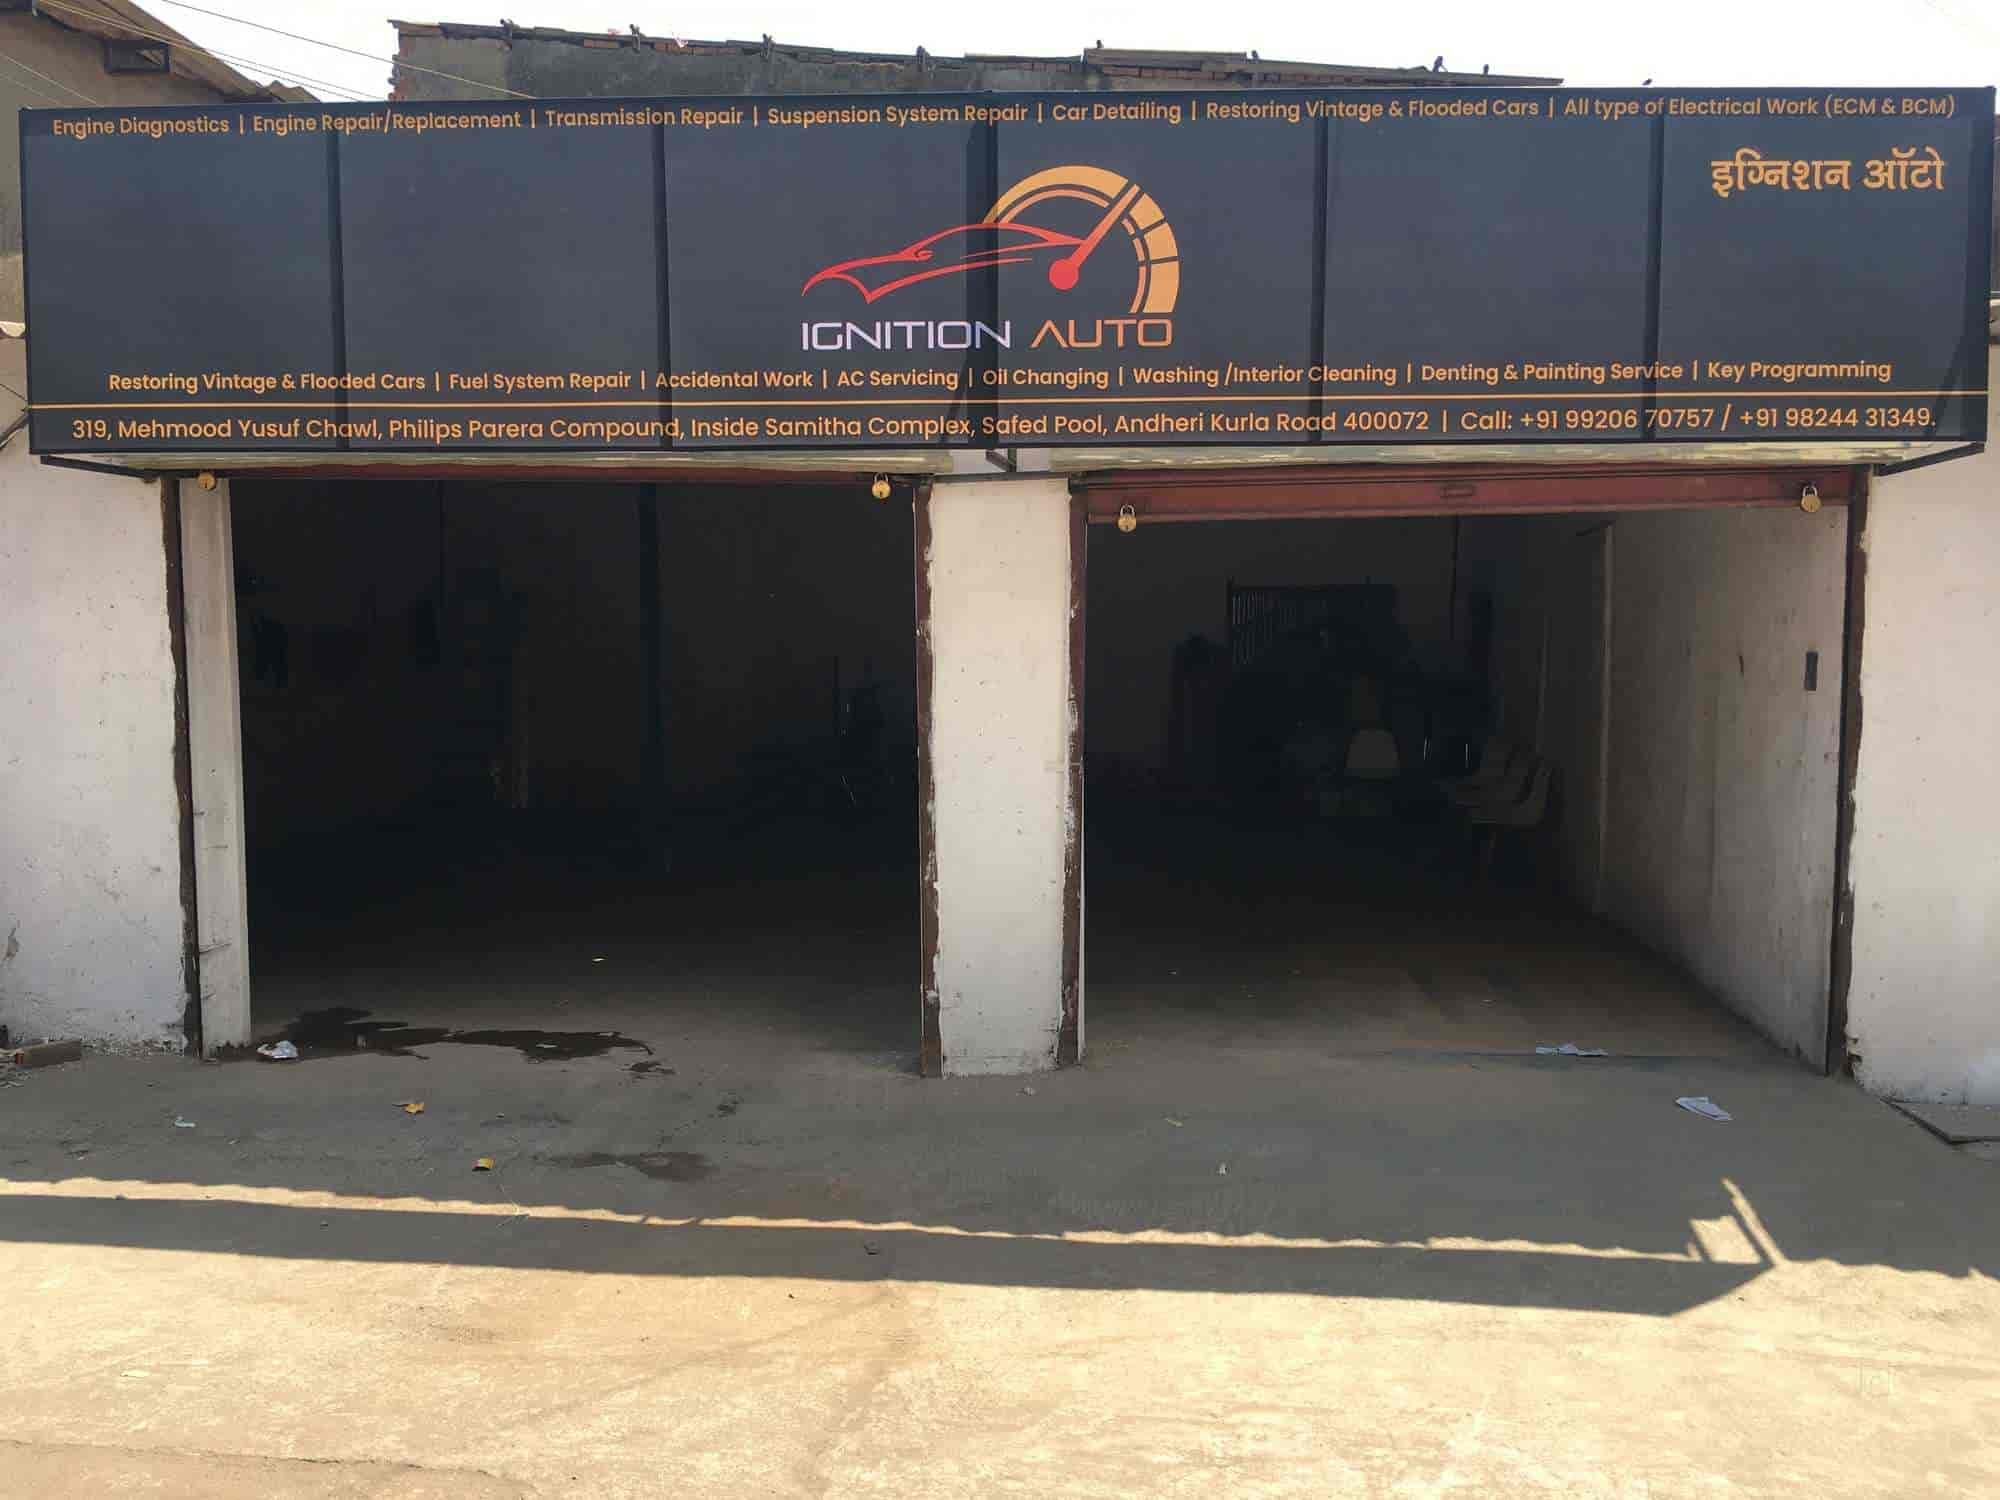 Ignition Auto, Andheri East - Car Repair & Services in